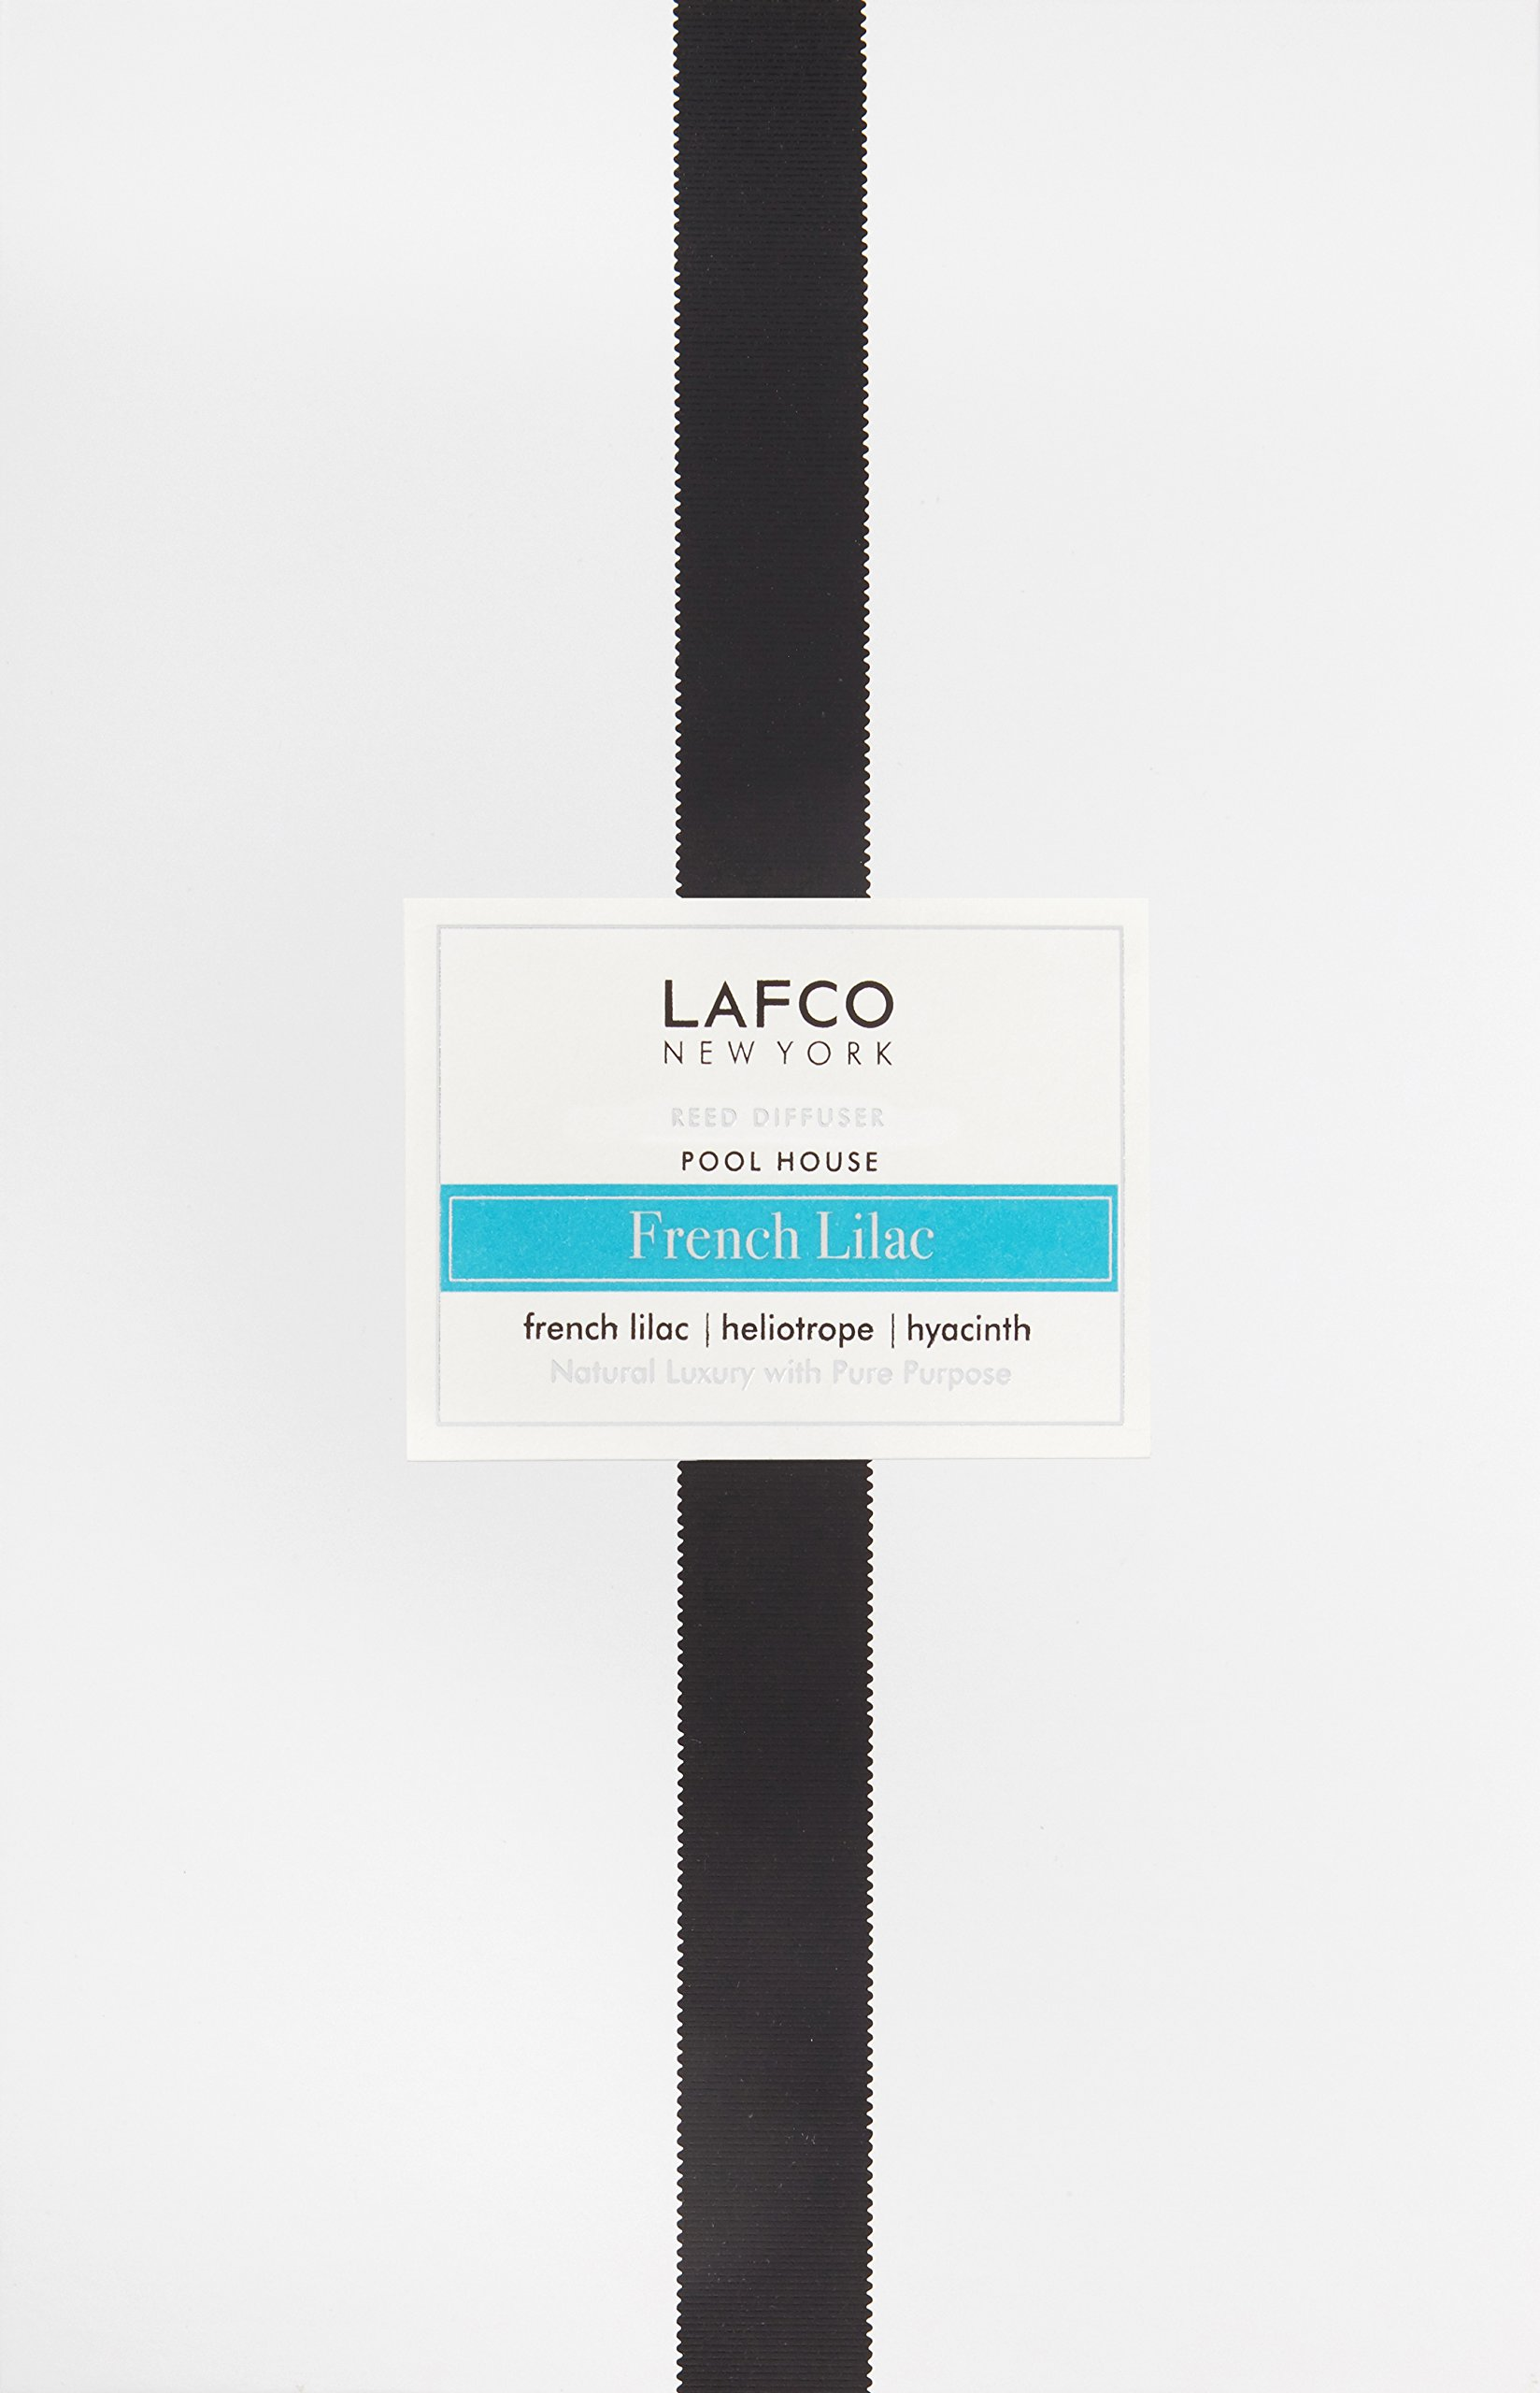 LAFCO House & Home Diffuser, Pool House French Lilac, 15 Fl Oz by LAFCO (Image #3)